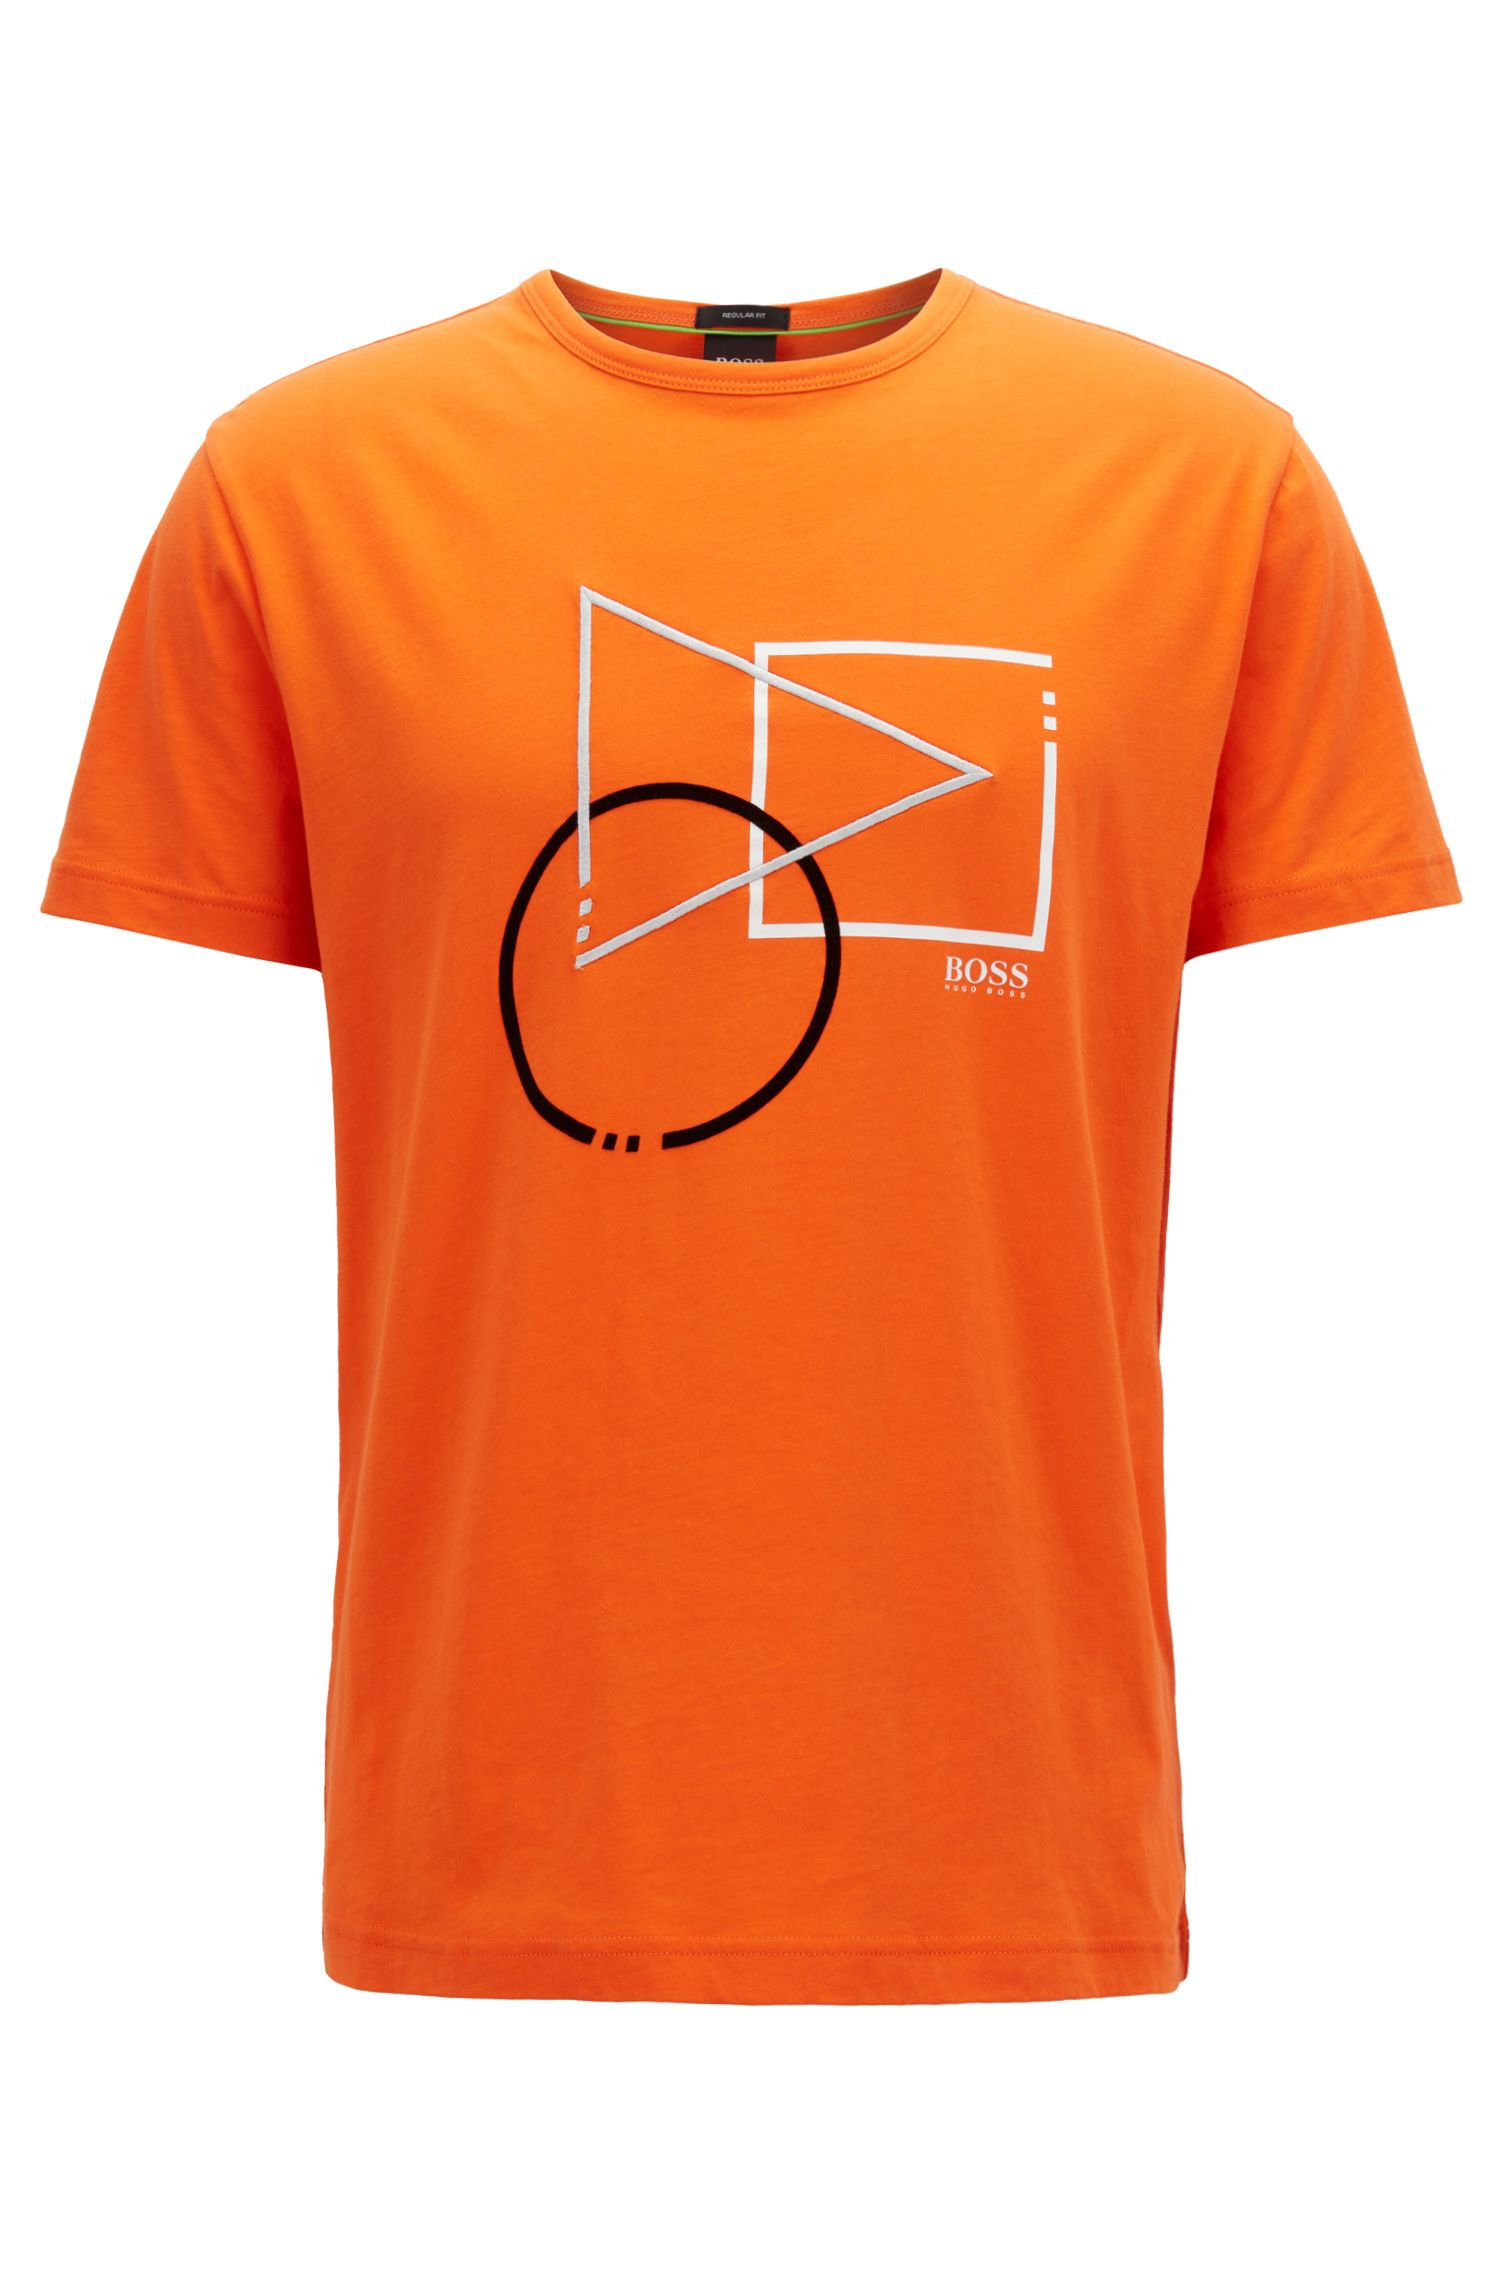 Short-sleeved graphic T-shirt in pure cotton